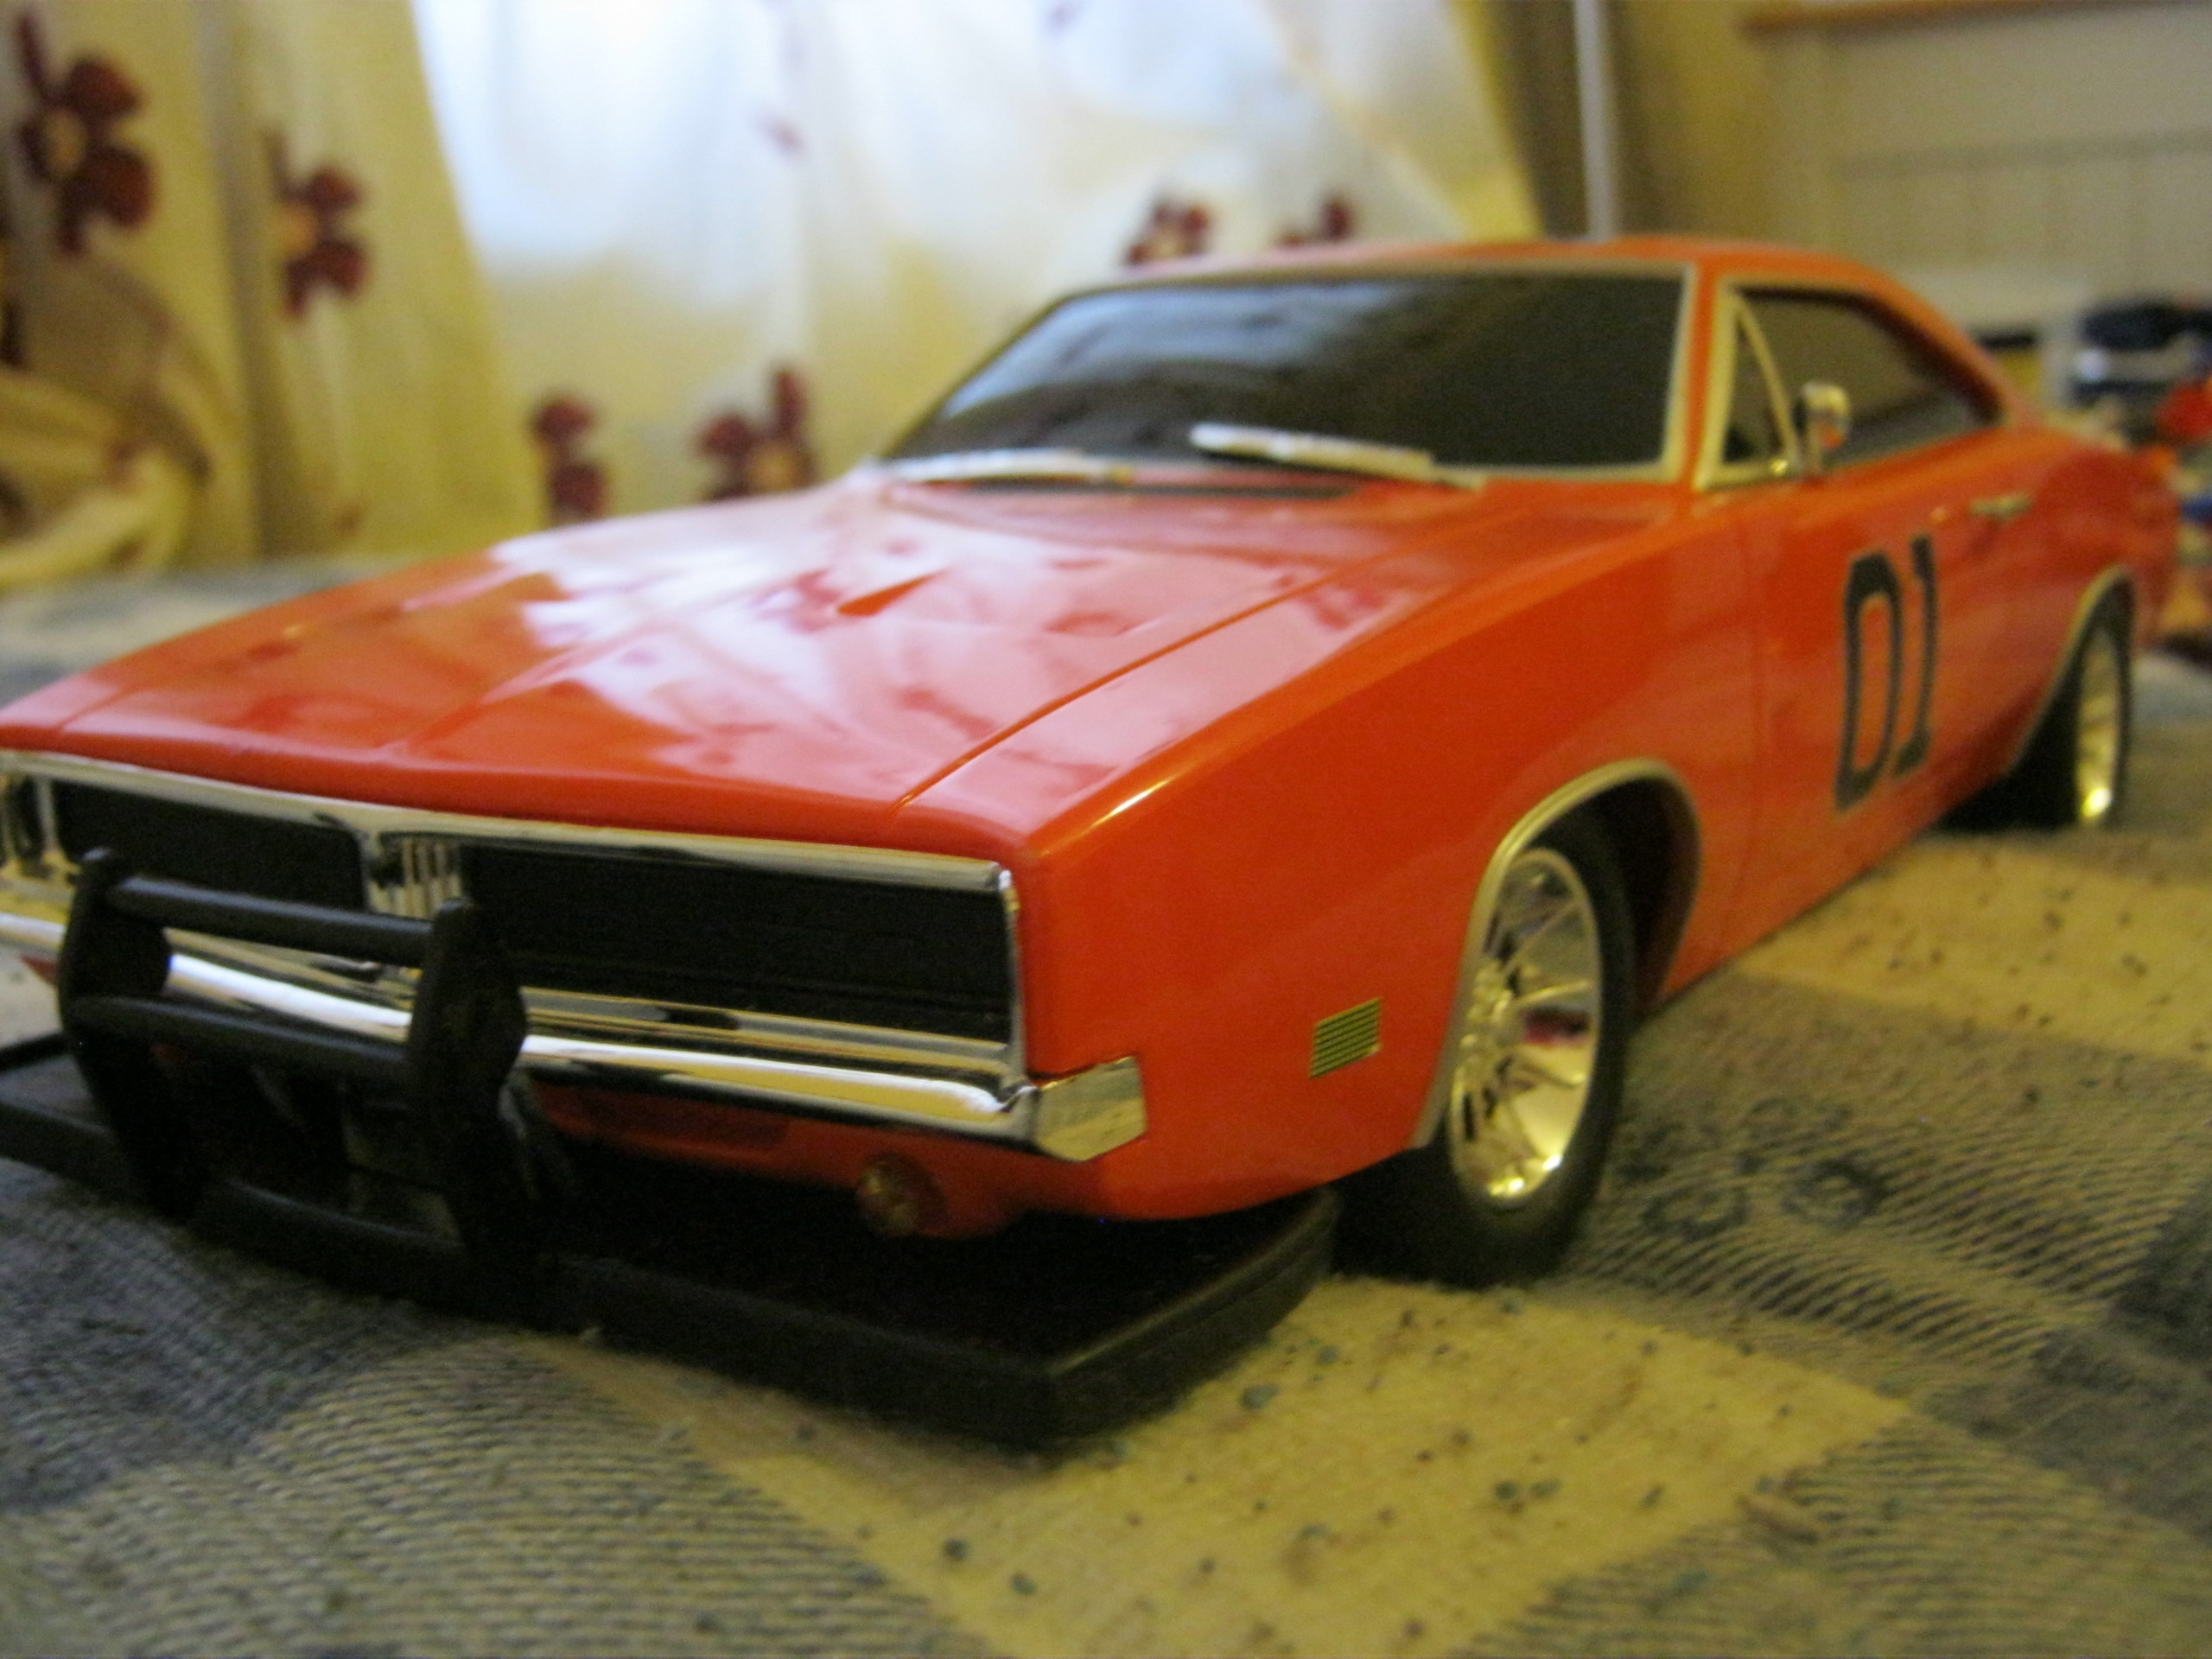 2560x1920 The Dukes Of Hazzard images general lee HD wallpaper and background photos